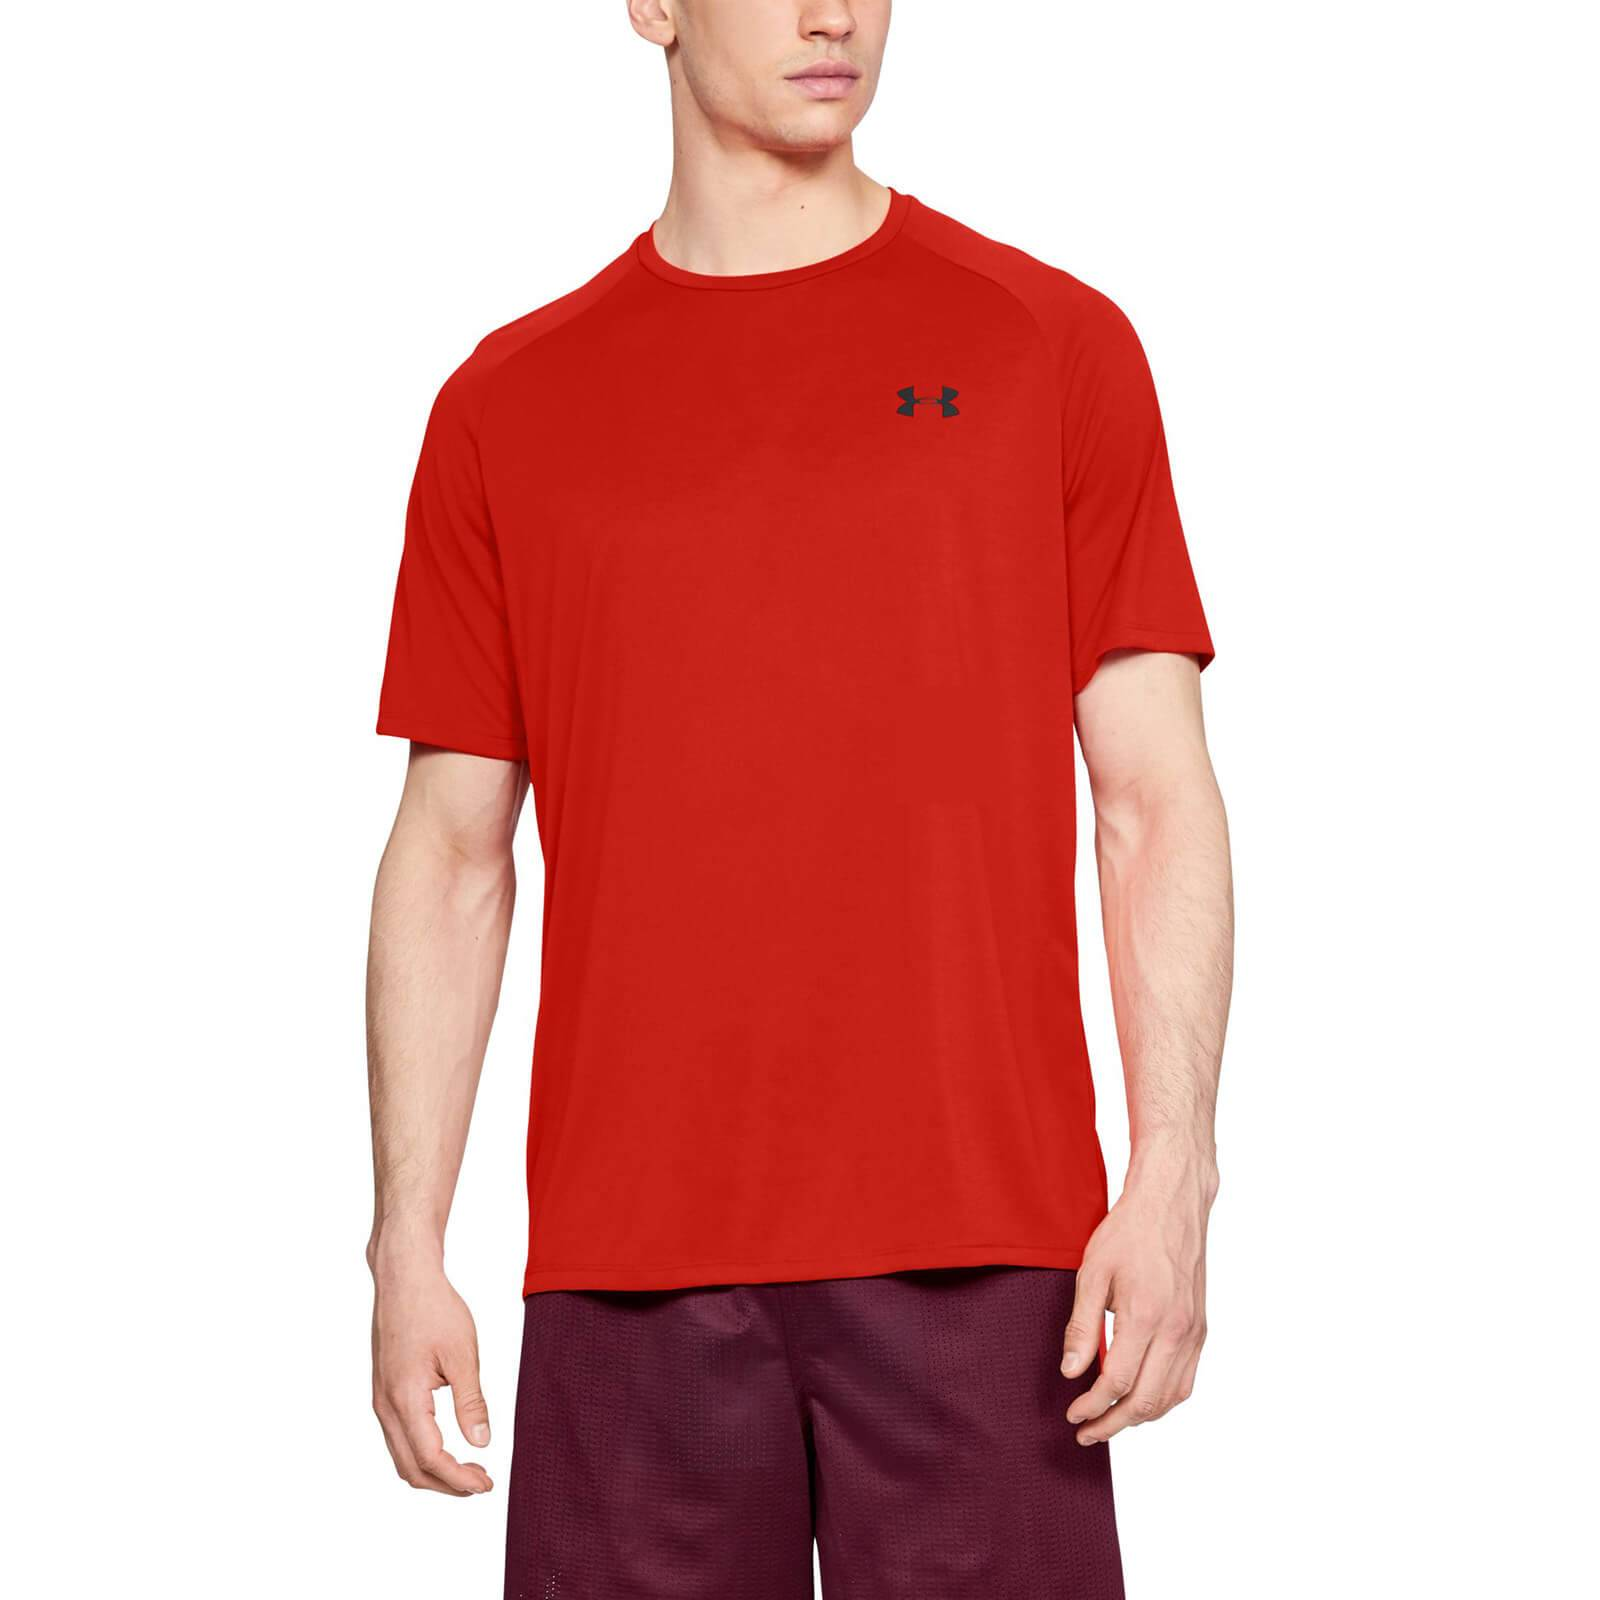 Under Armour Tech T-Shirt - Red - M - Red